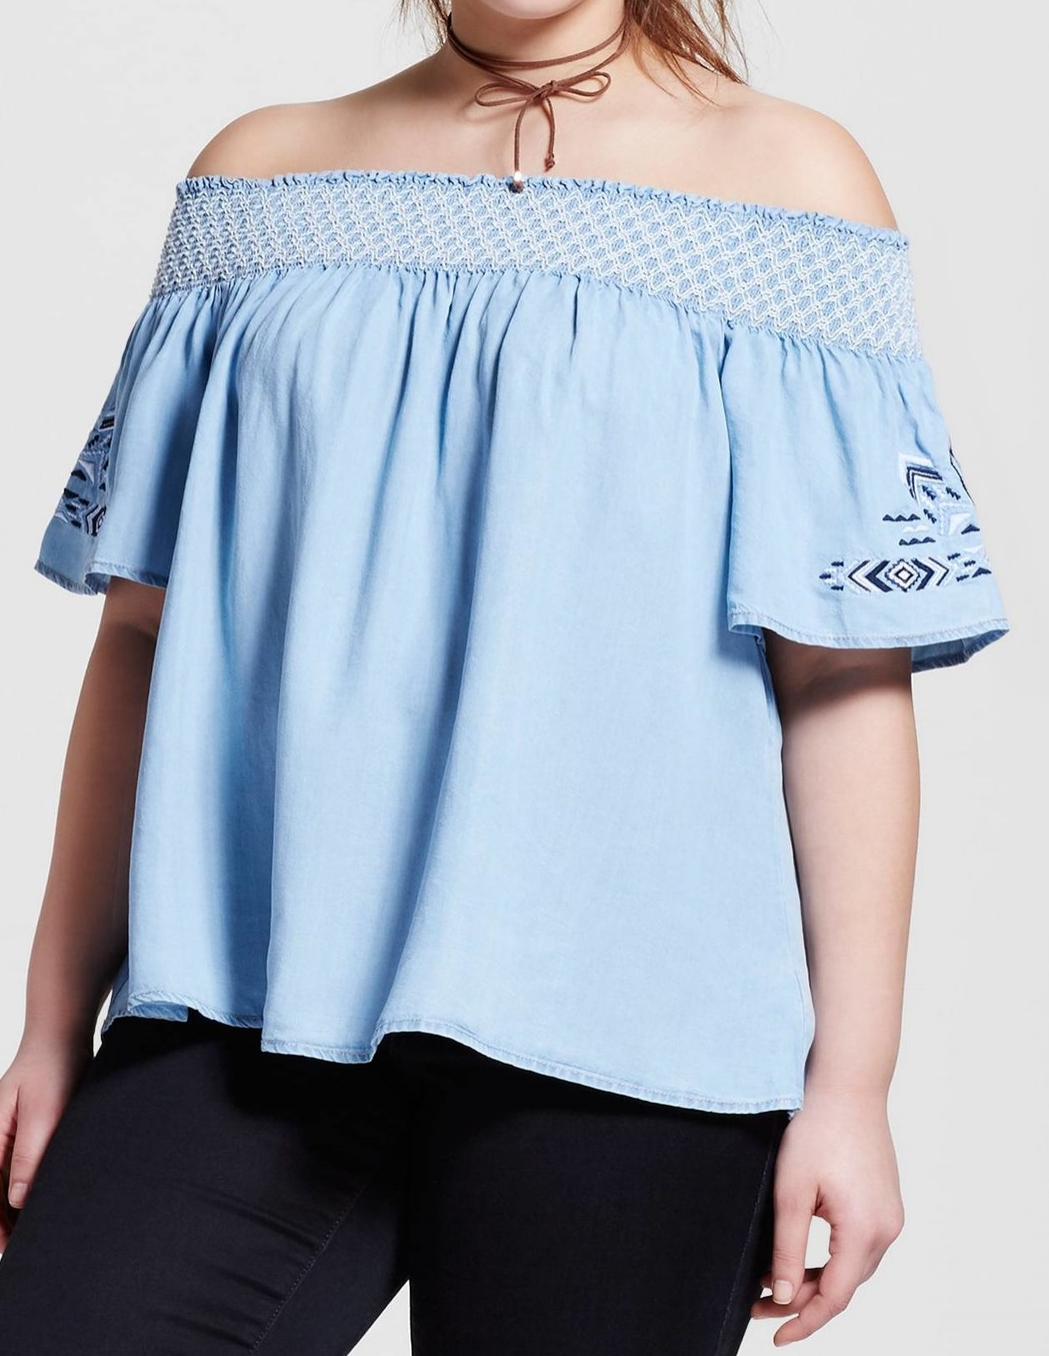 '3 Hearts' Chambray Off the Shoulder Top - $24.99 Target